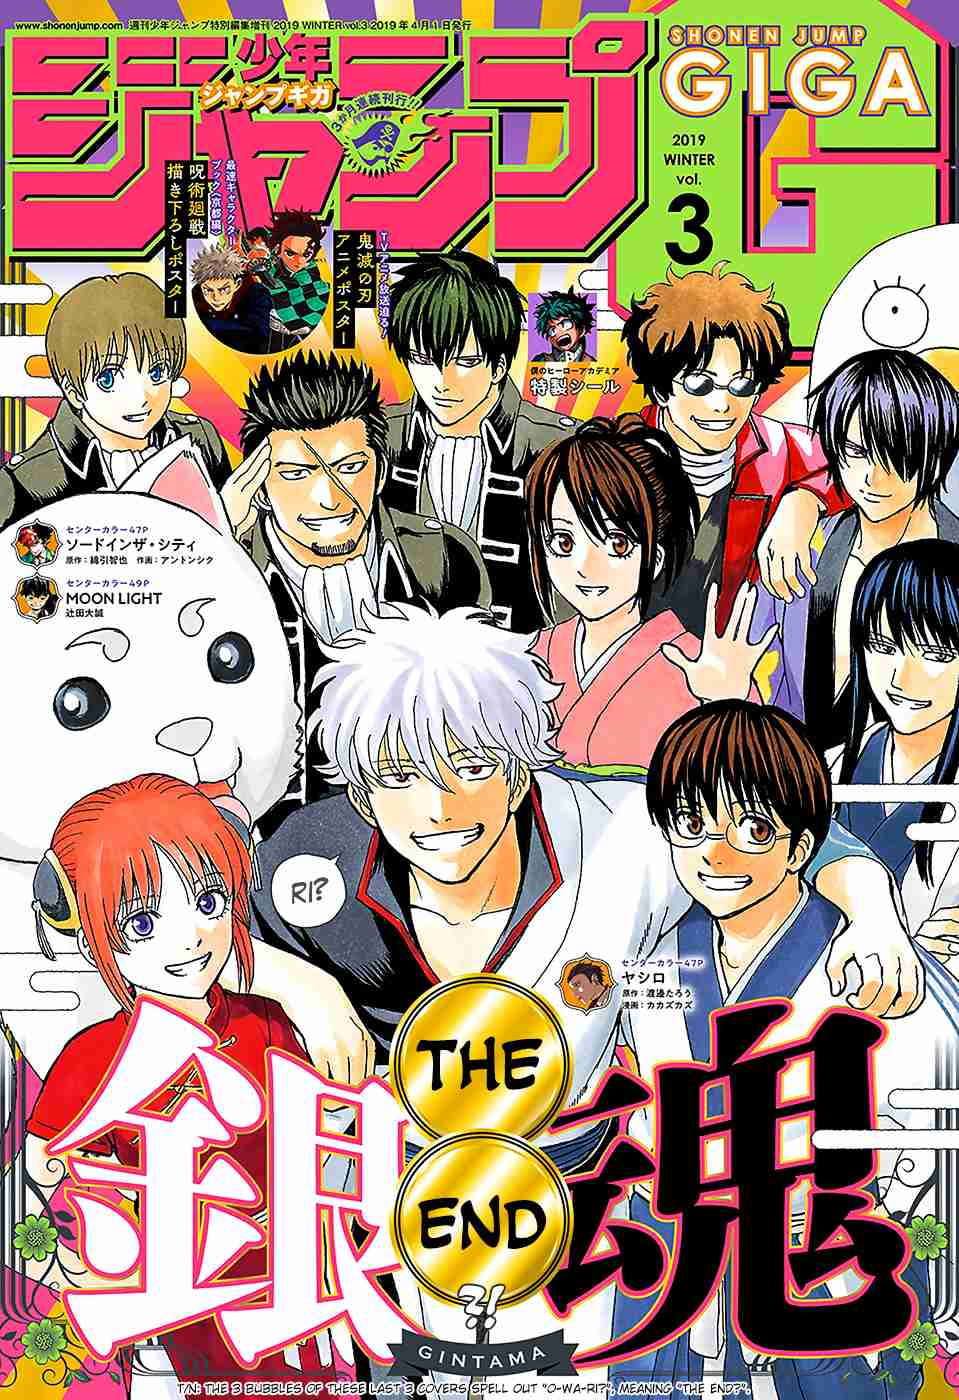 Gintama Vol. 77 Ch. 701 Homing Instinct